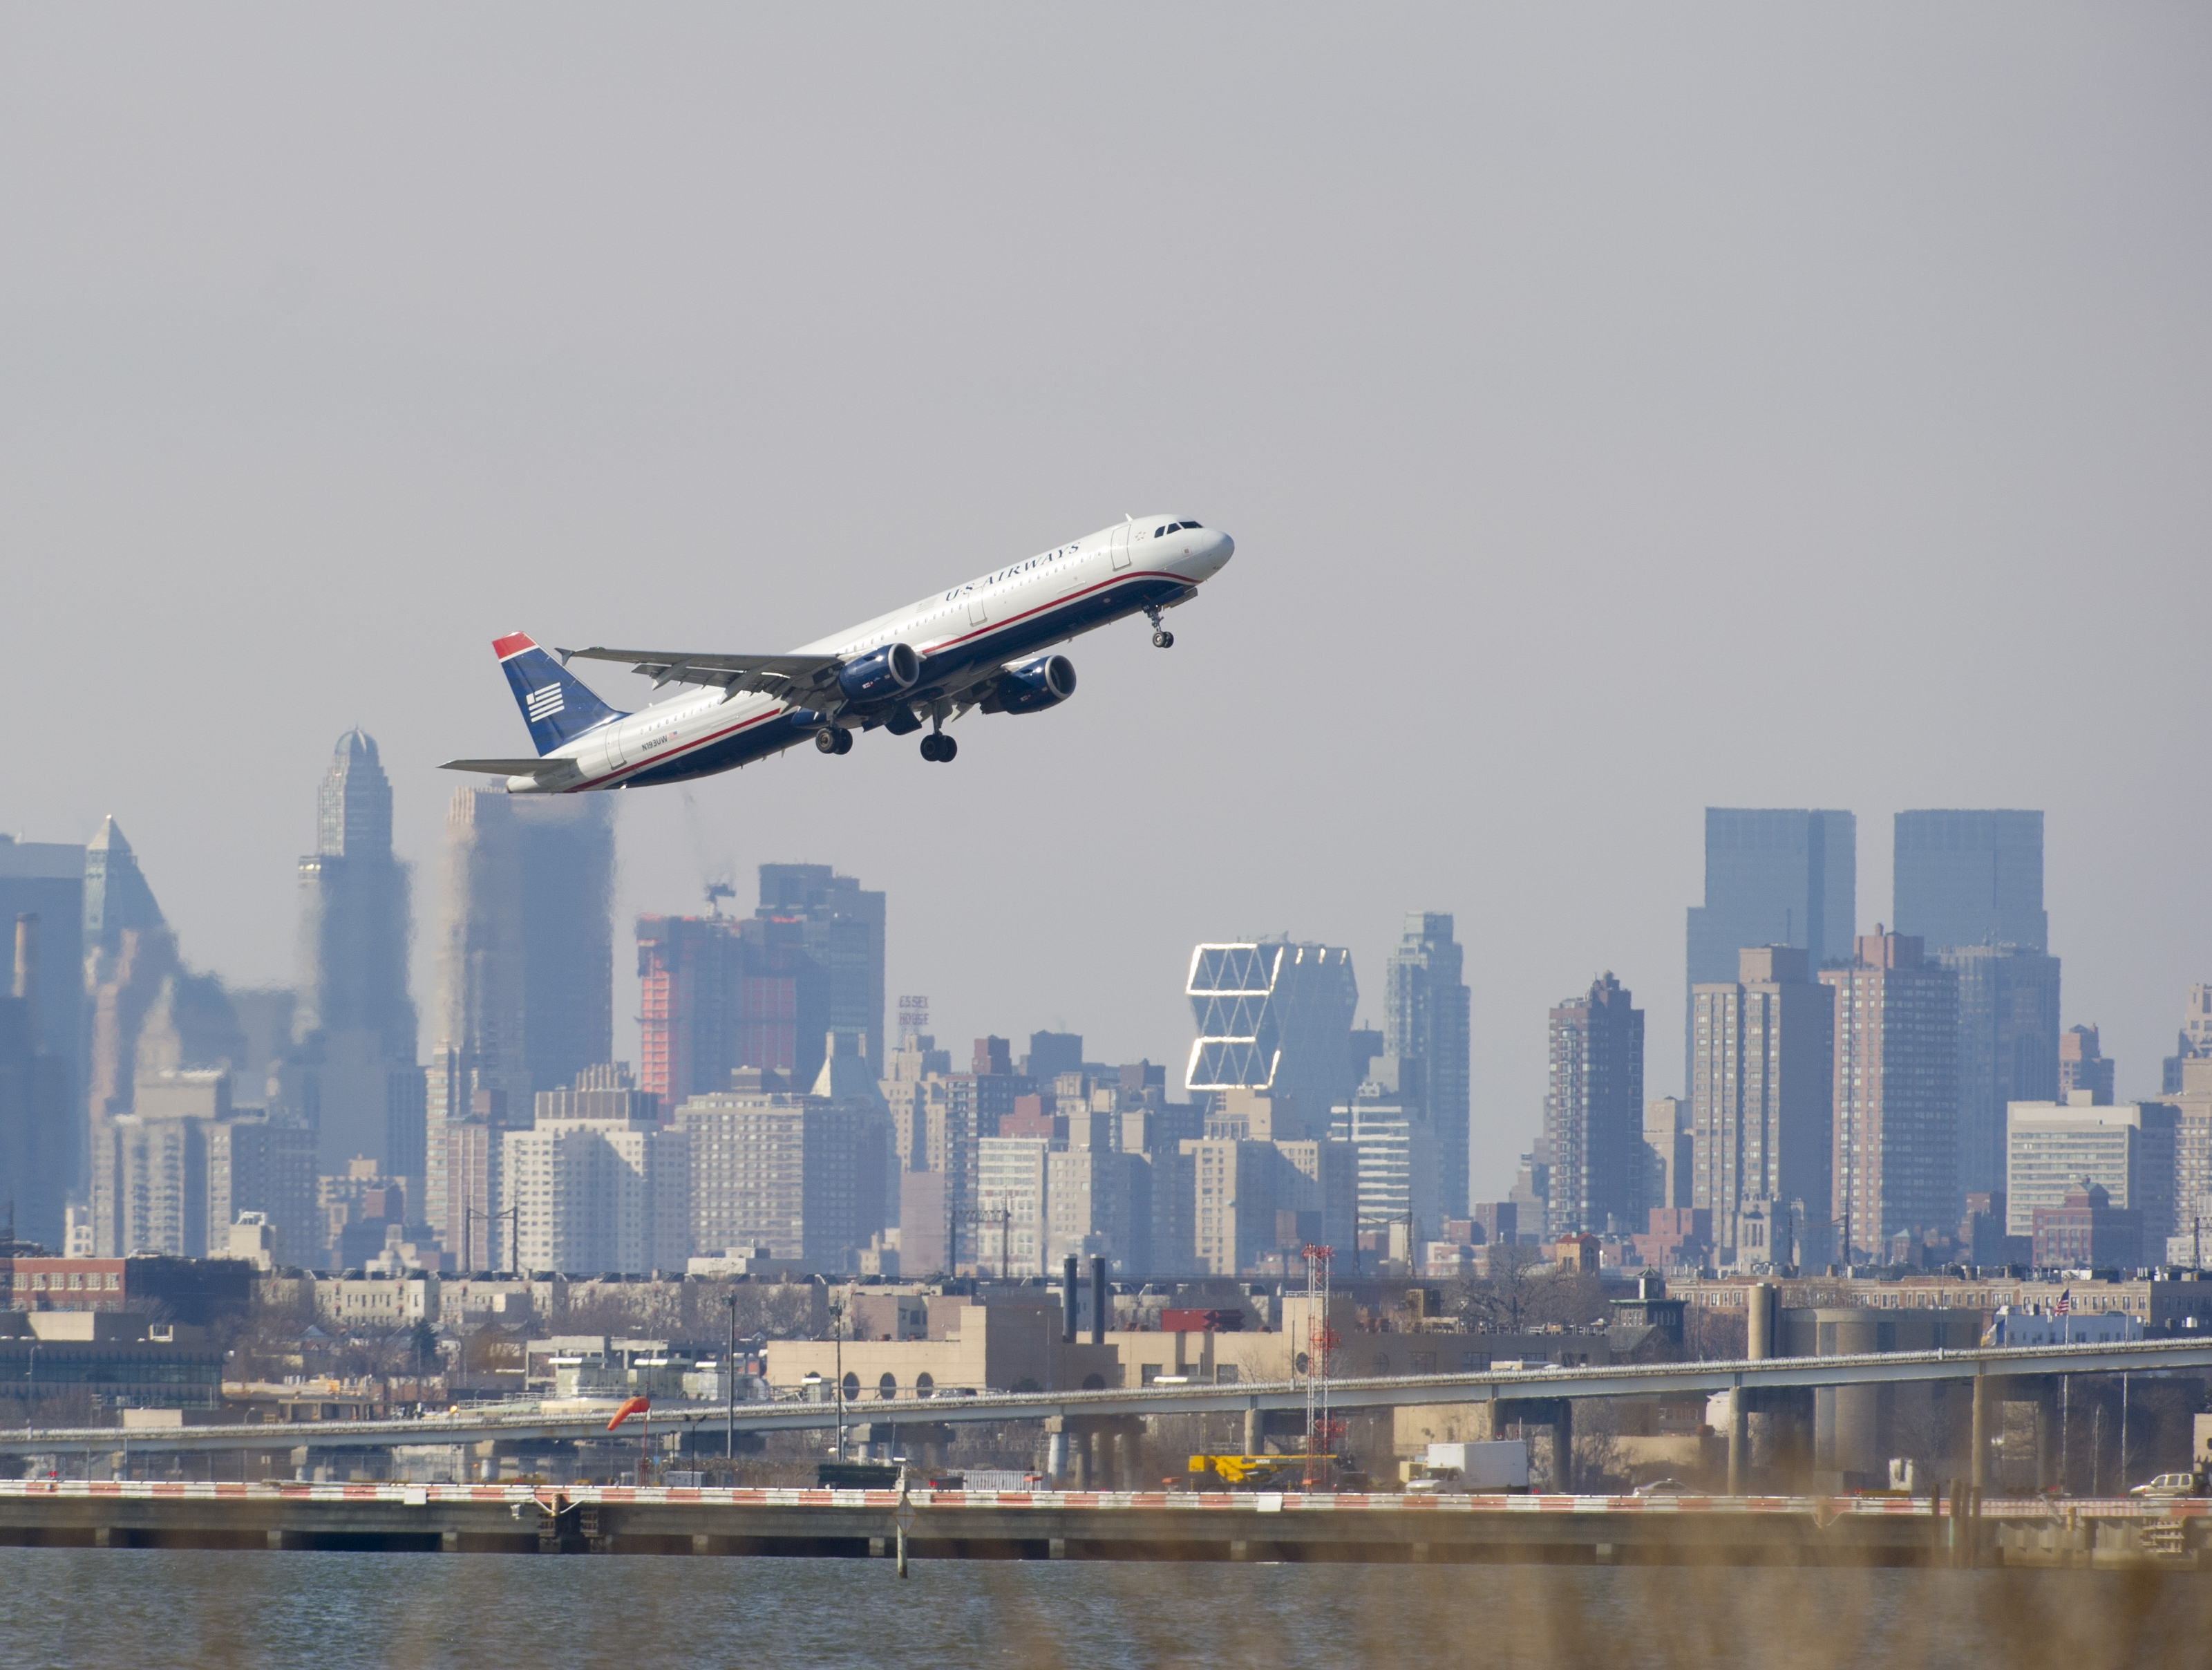 New York, NY - Scare In The Air: 2 Planes In Near-Miss Above NYC